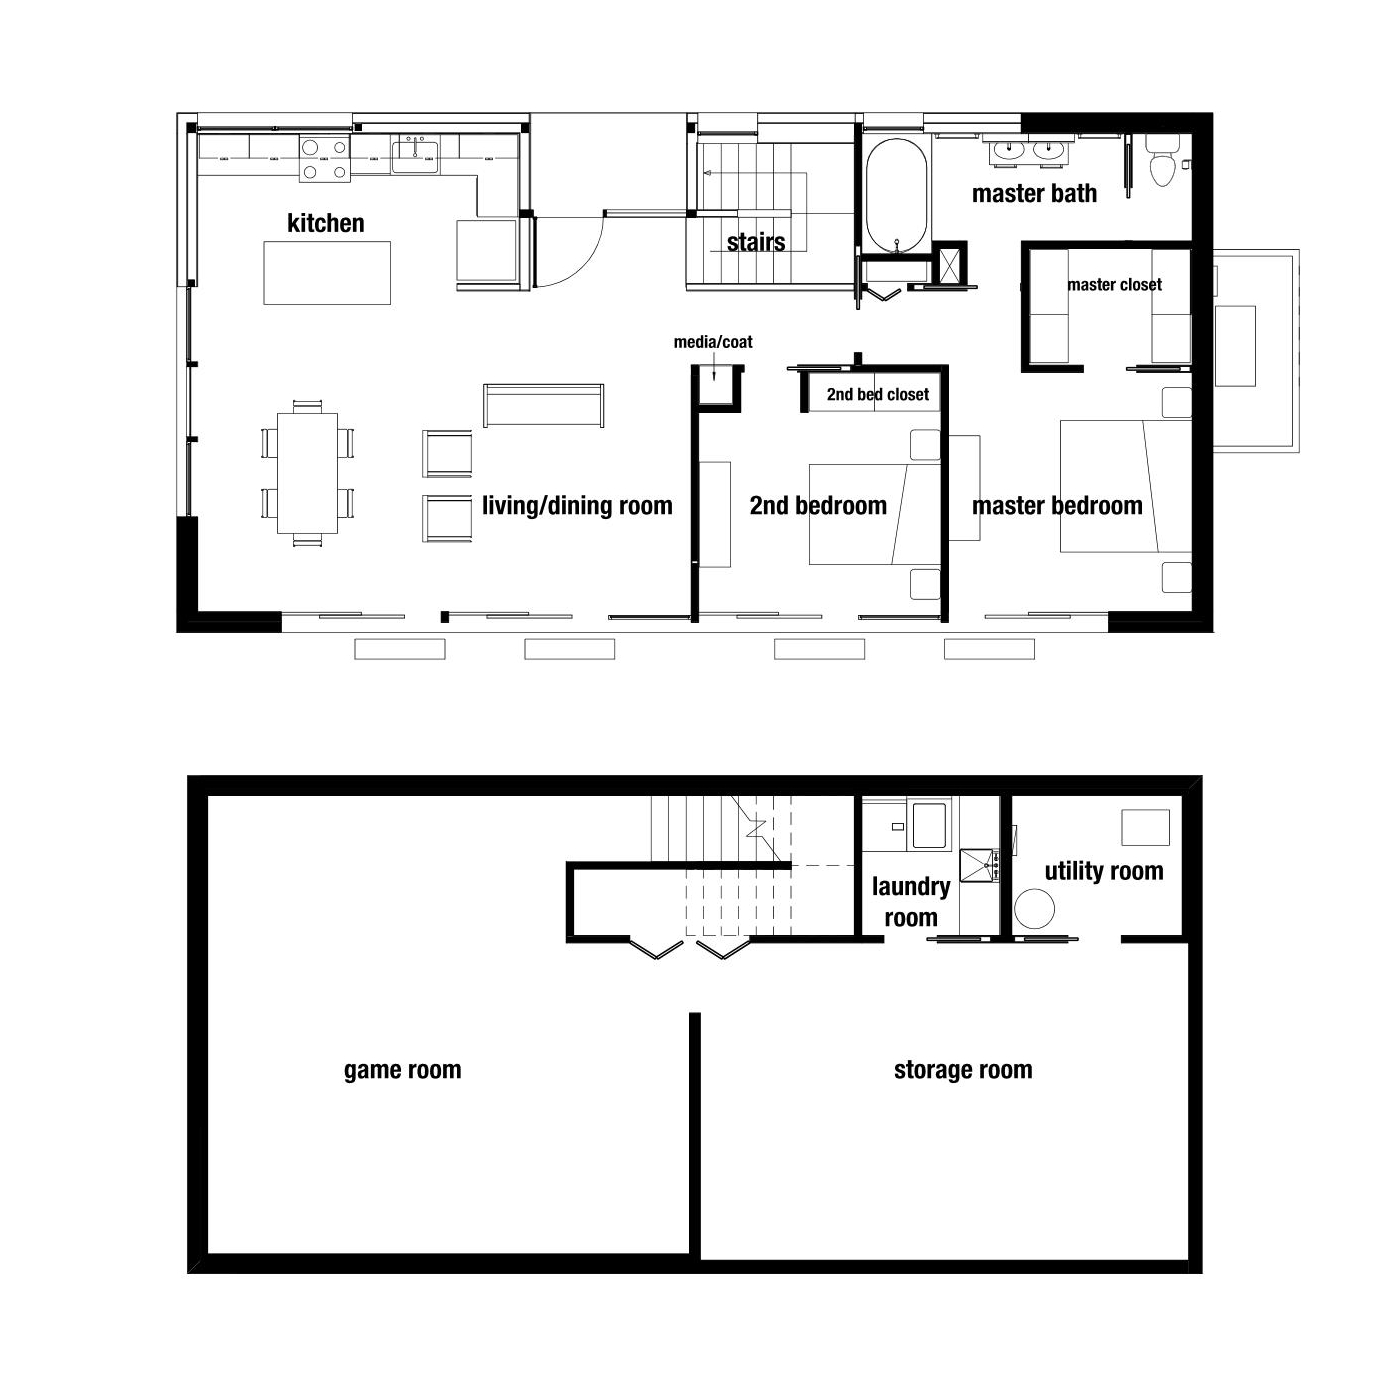 "OVERALL DIMENSION: 50'-9"" x 24'-11""   OVERALL SQ. FT.: approx. 1260 sq. ft.   GAME ROOM: 24'-1"" X 22'-11""   STORAGE ROOM: 34'-5"" X 15'-10""   CLOSET: 37 sq. ft.   LAUNDRY ROOM: 49 sq. ft.   UTILITY ROOM: 60 sq. ft."